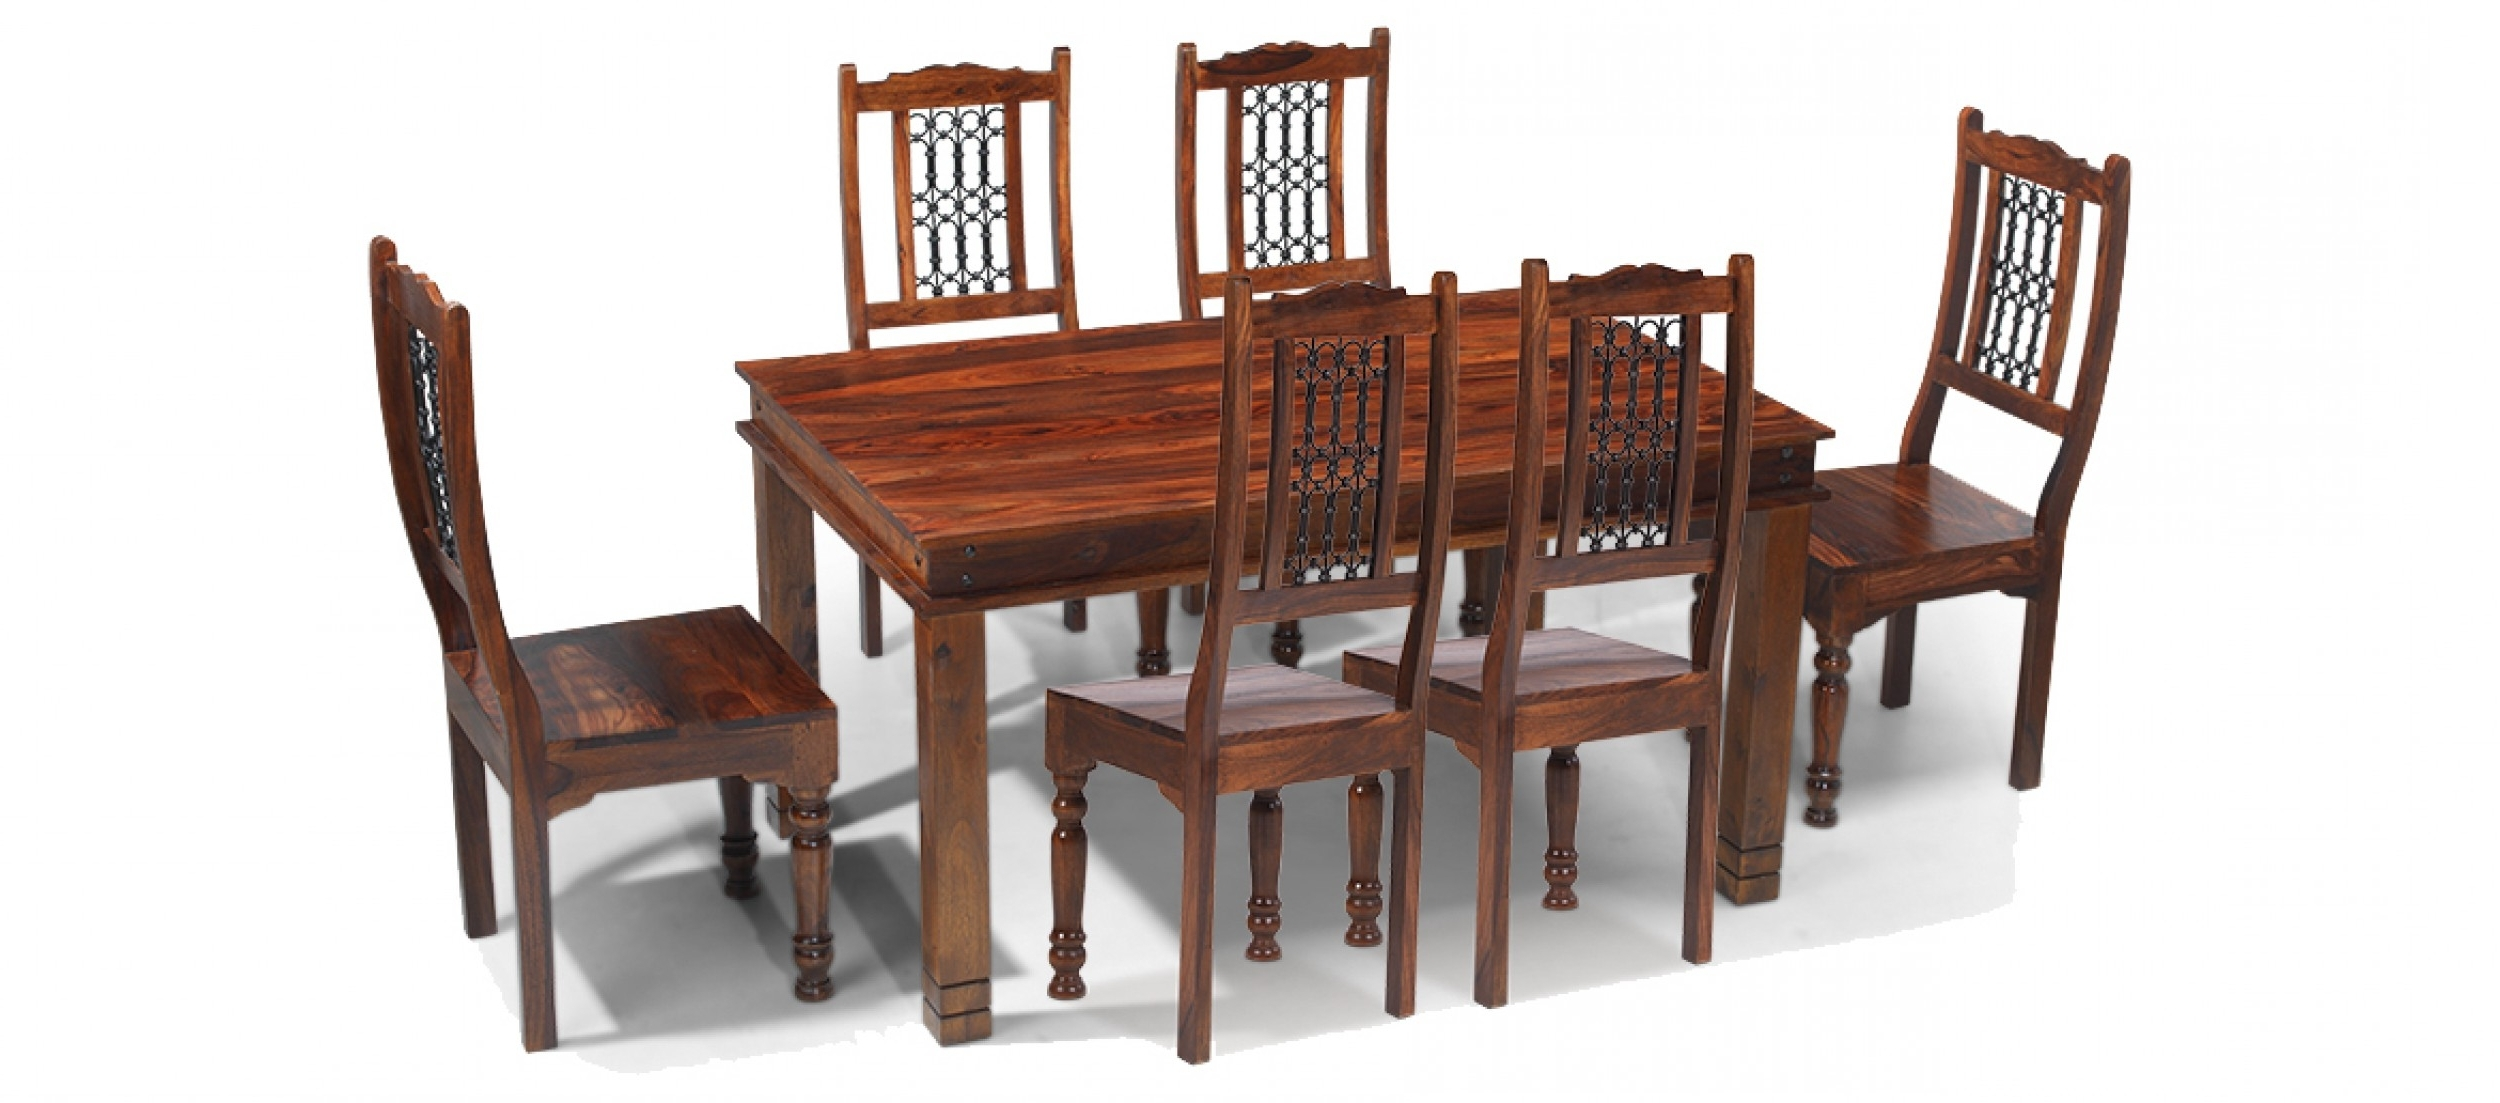 Latest Solid Oak Dining Tables And 6 Chairs With Regard To Jali Sheesham 160 Cm Chunky Dining Table And 6 Chairs (View 20 of 25)